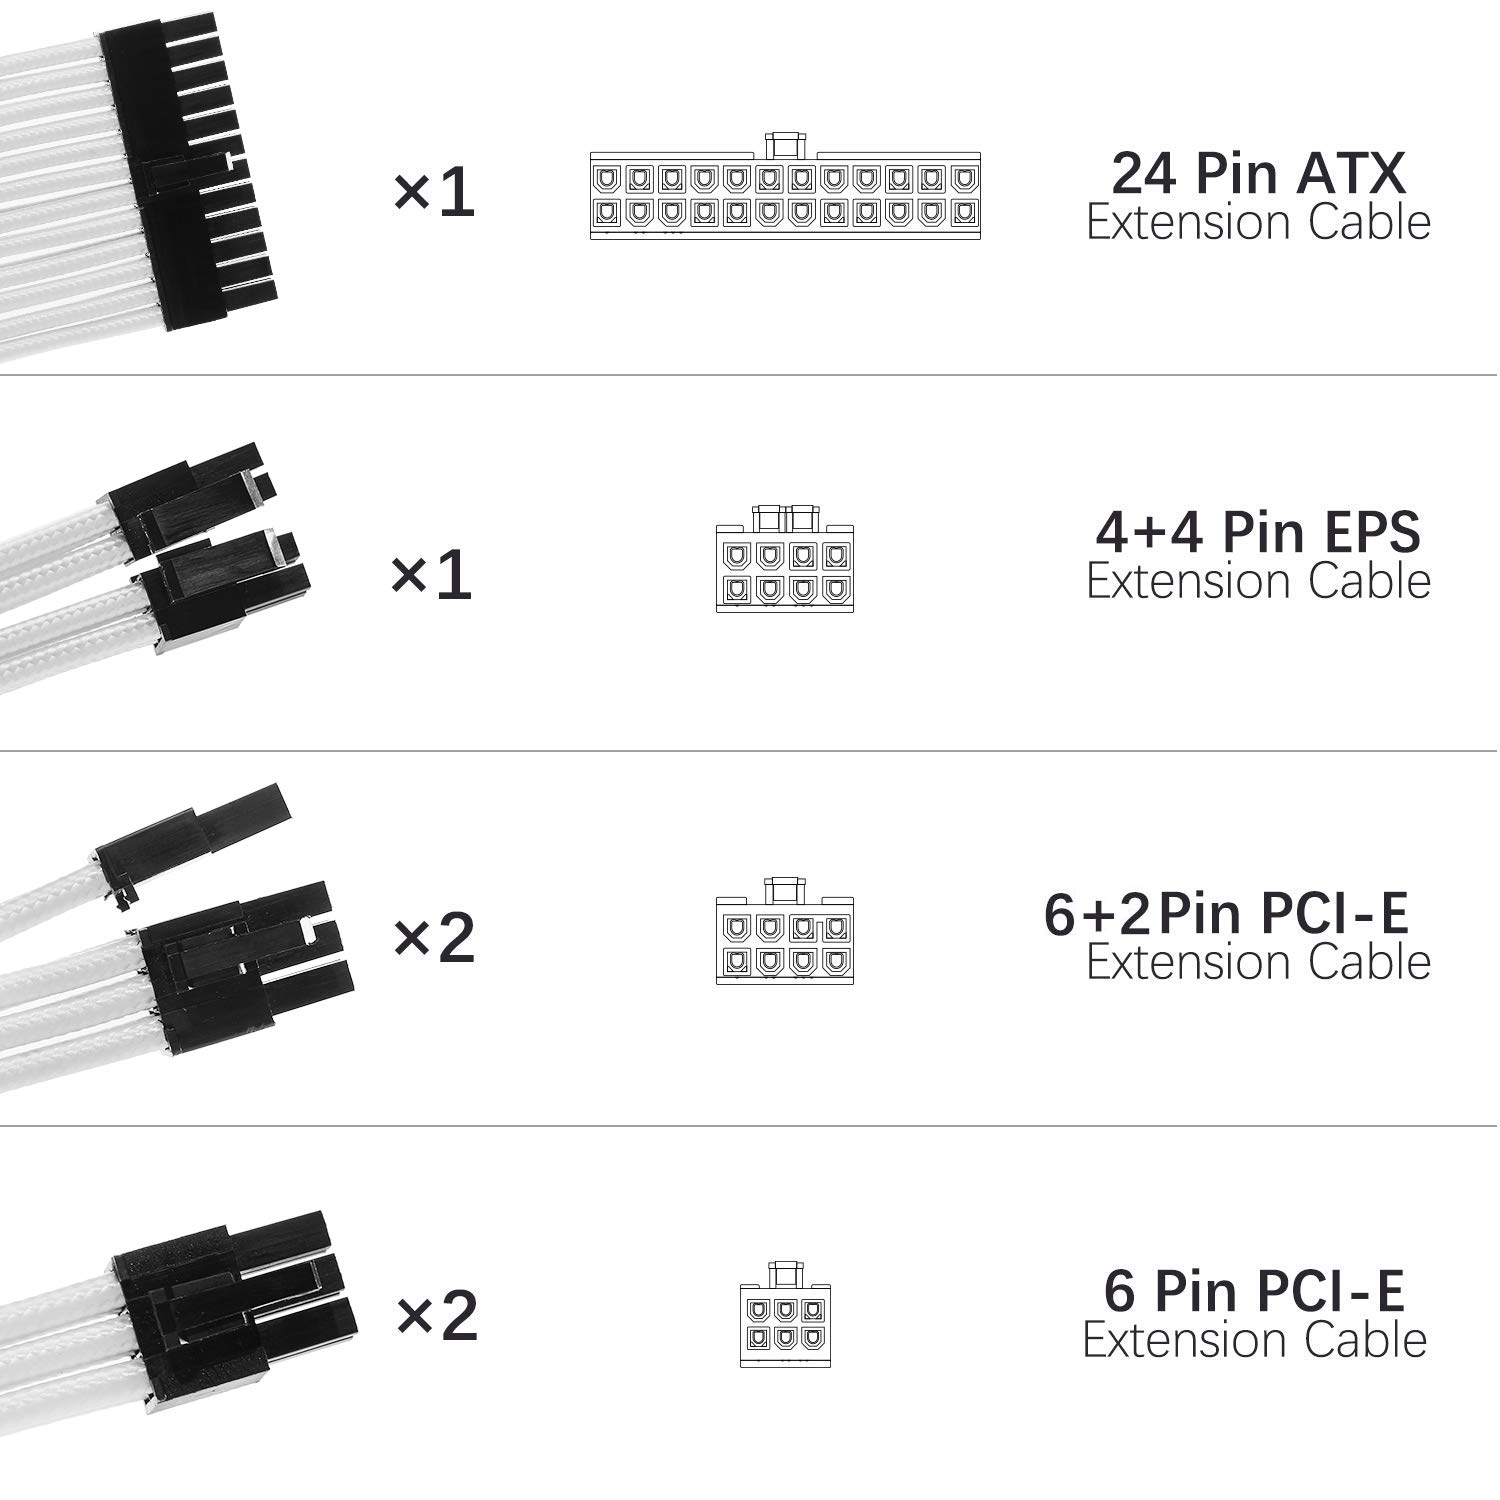 White Sleeved Cables PSU Extension Cable Kit with 30CM Sleeved 24-PIN 8-PIN 6-PIN 4+4-PIN for ATX Power Supply